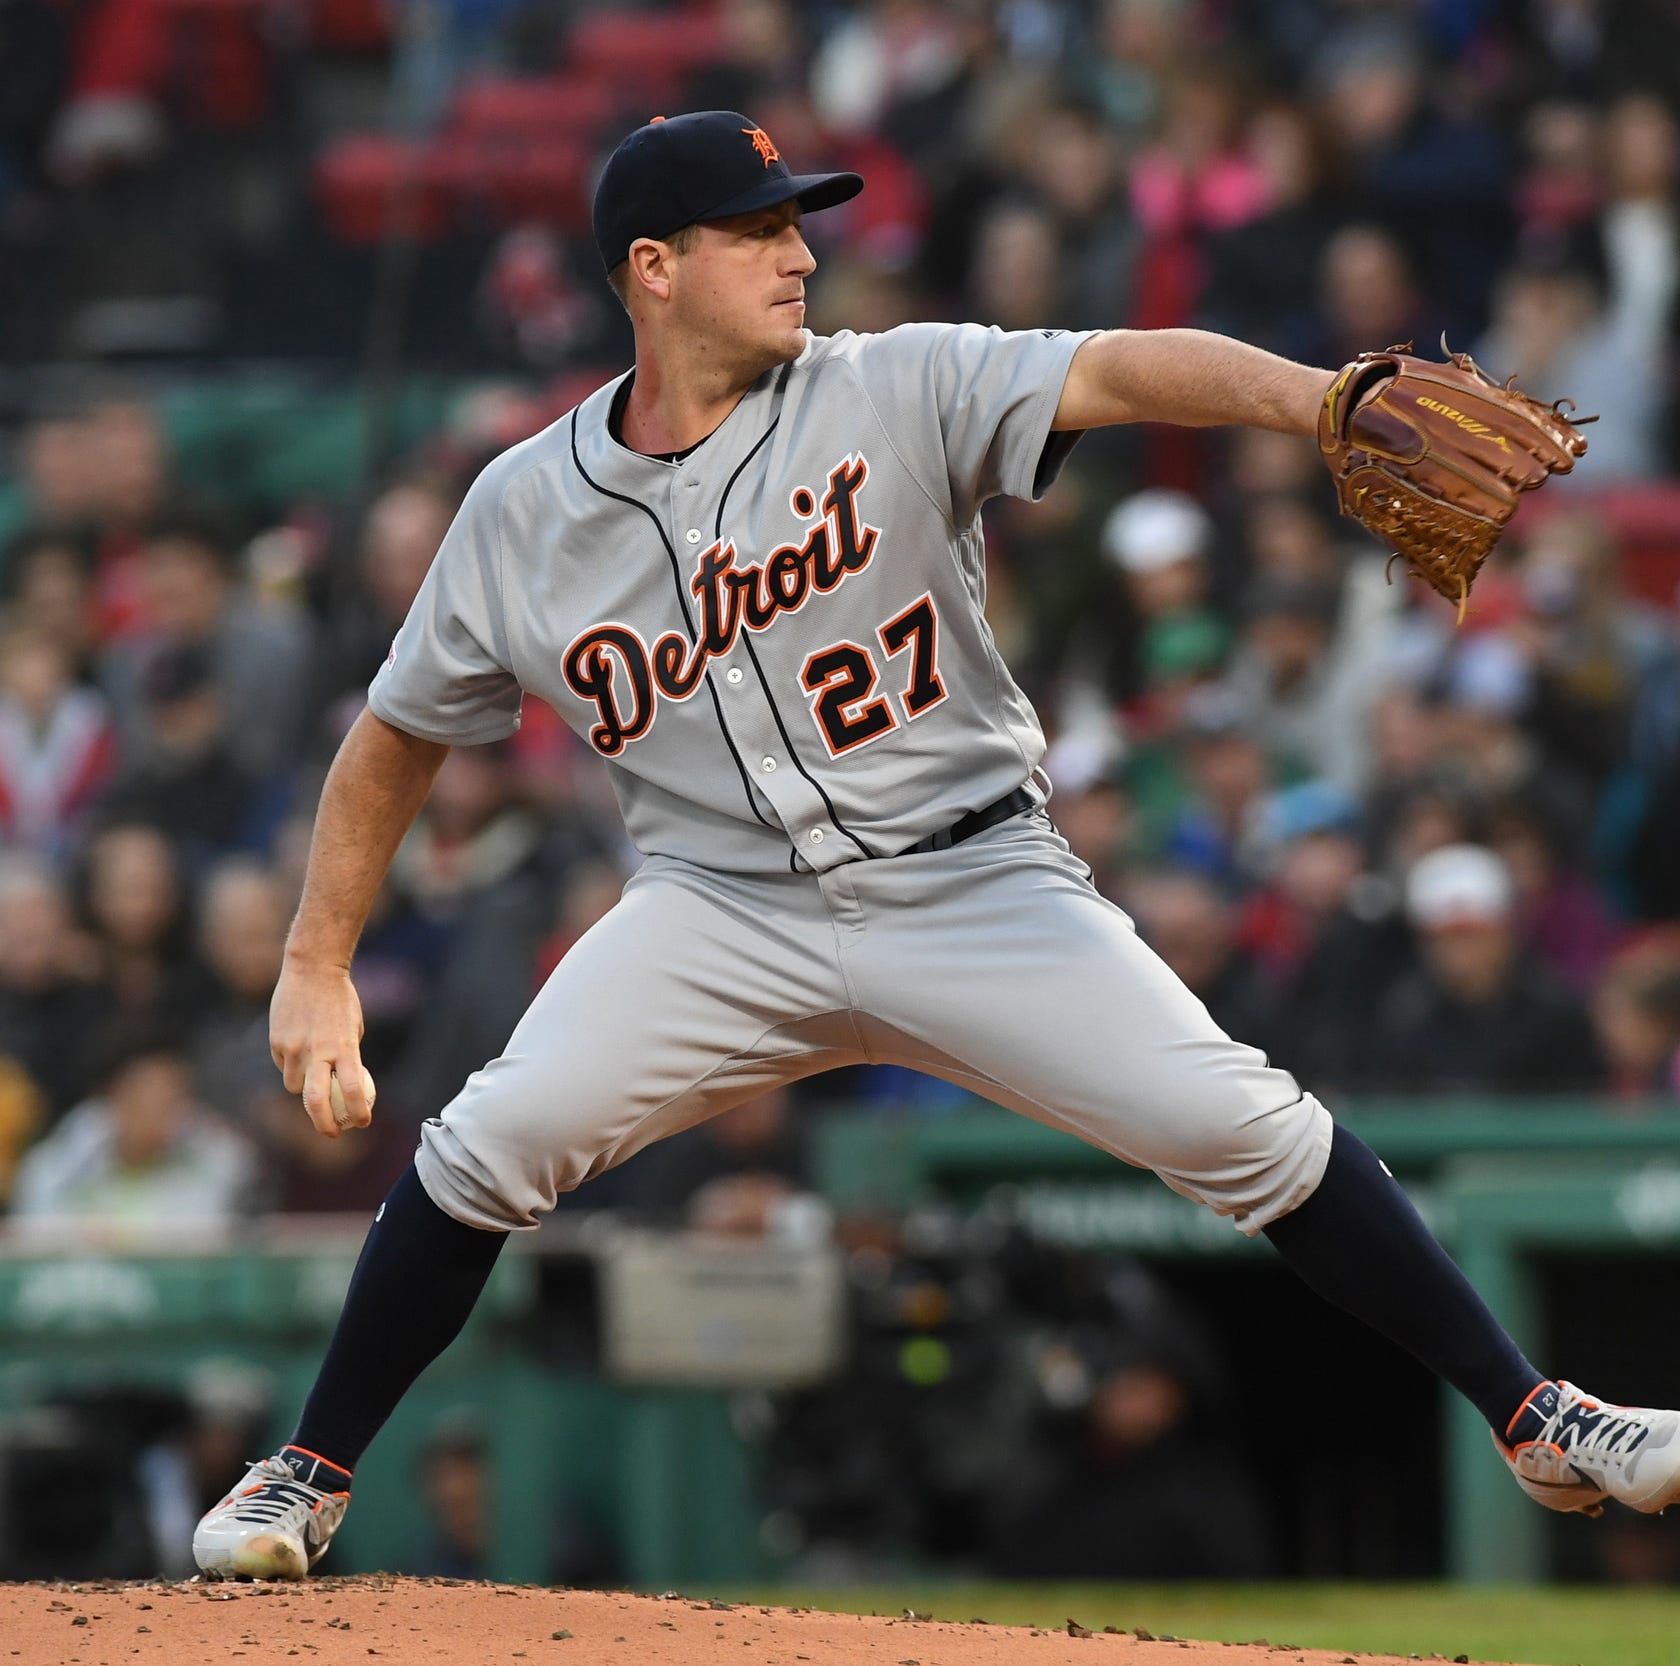 Detroit Tigers' fans frustrated me this weekend